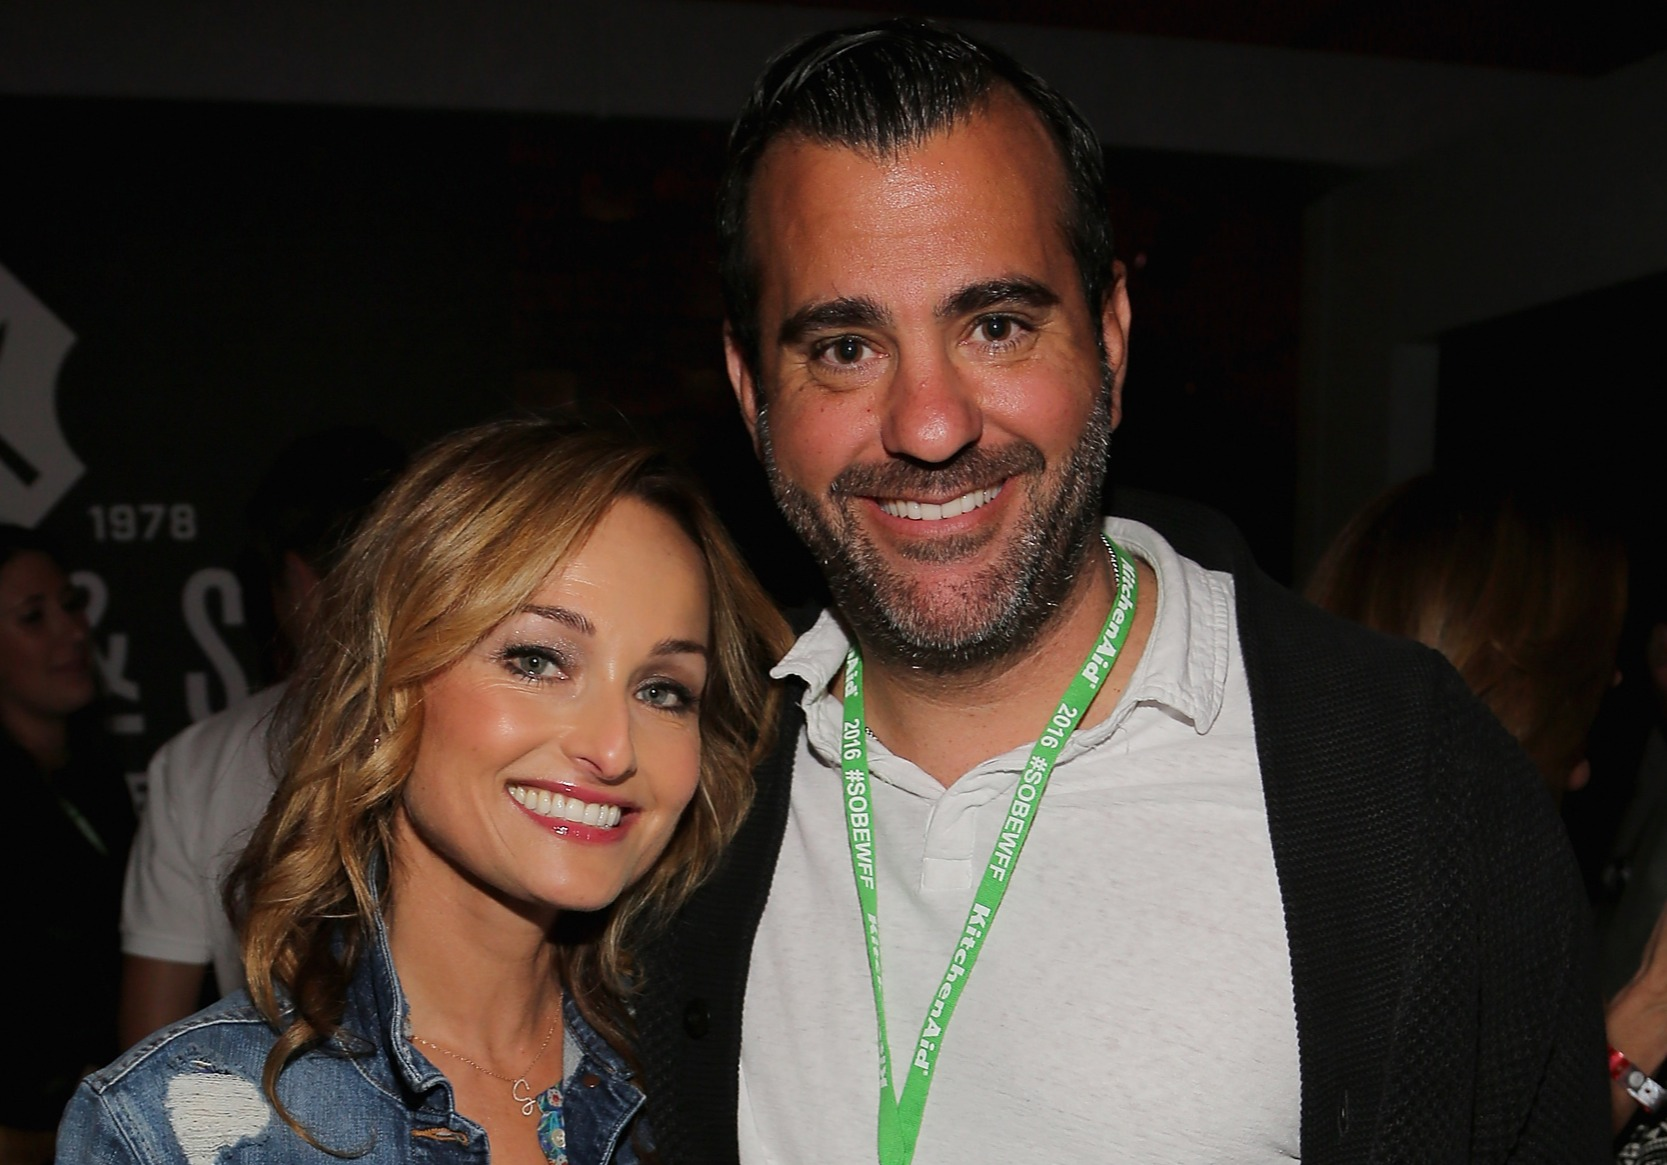 giada de laurentiis shane farley food network producer